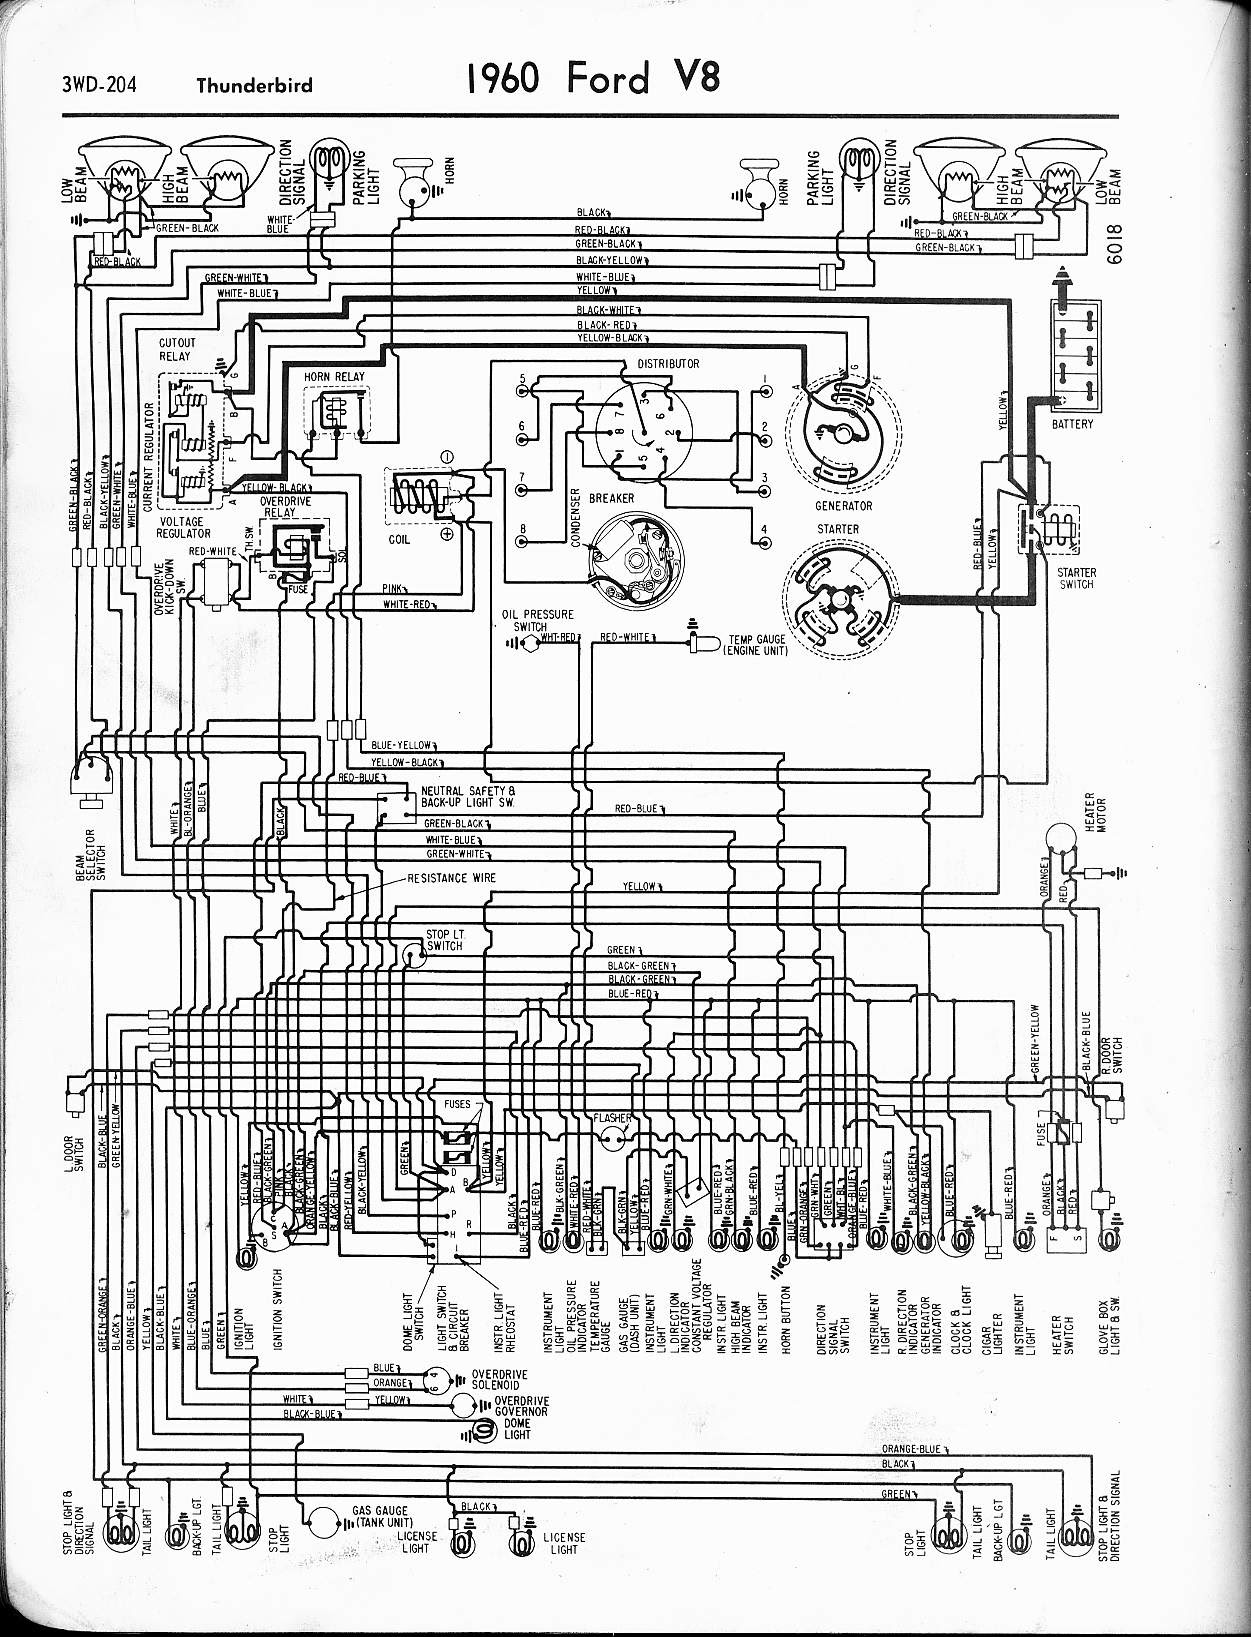 1970 Ford Wiring Schematic Wiring Diagram Correction Correction Cfcarsnoleggio It